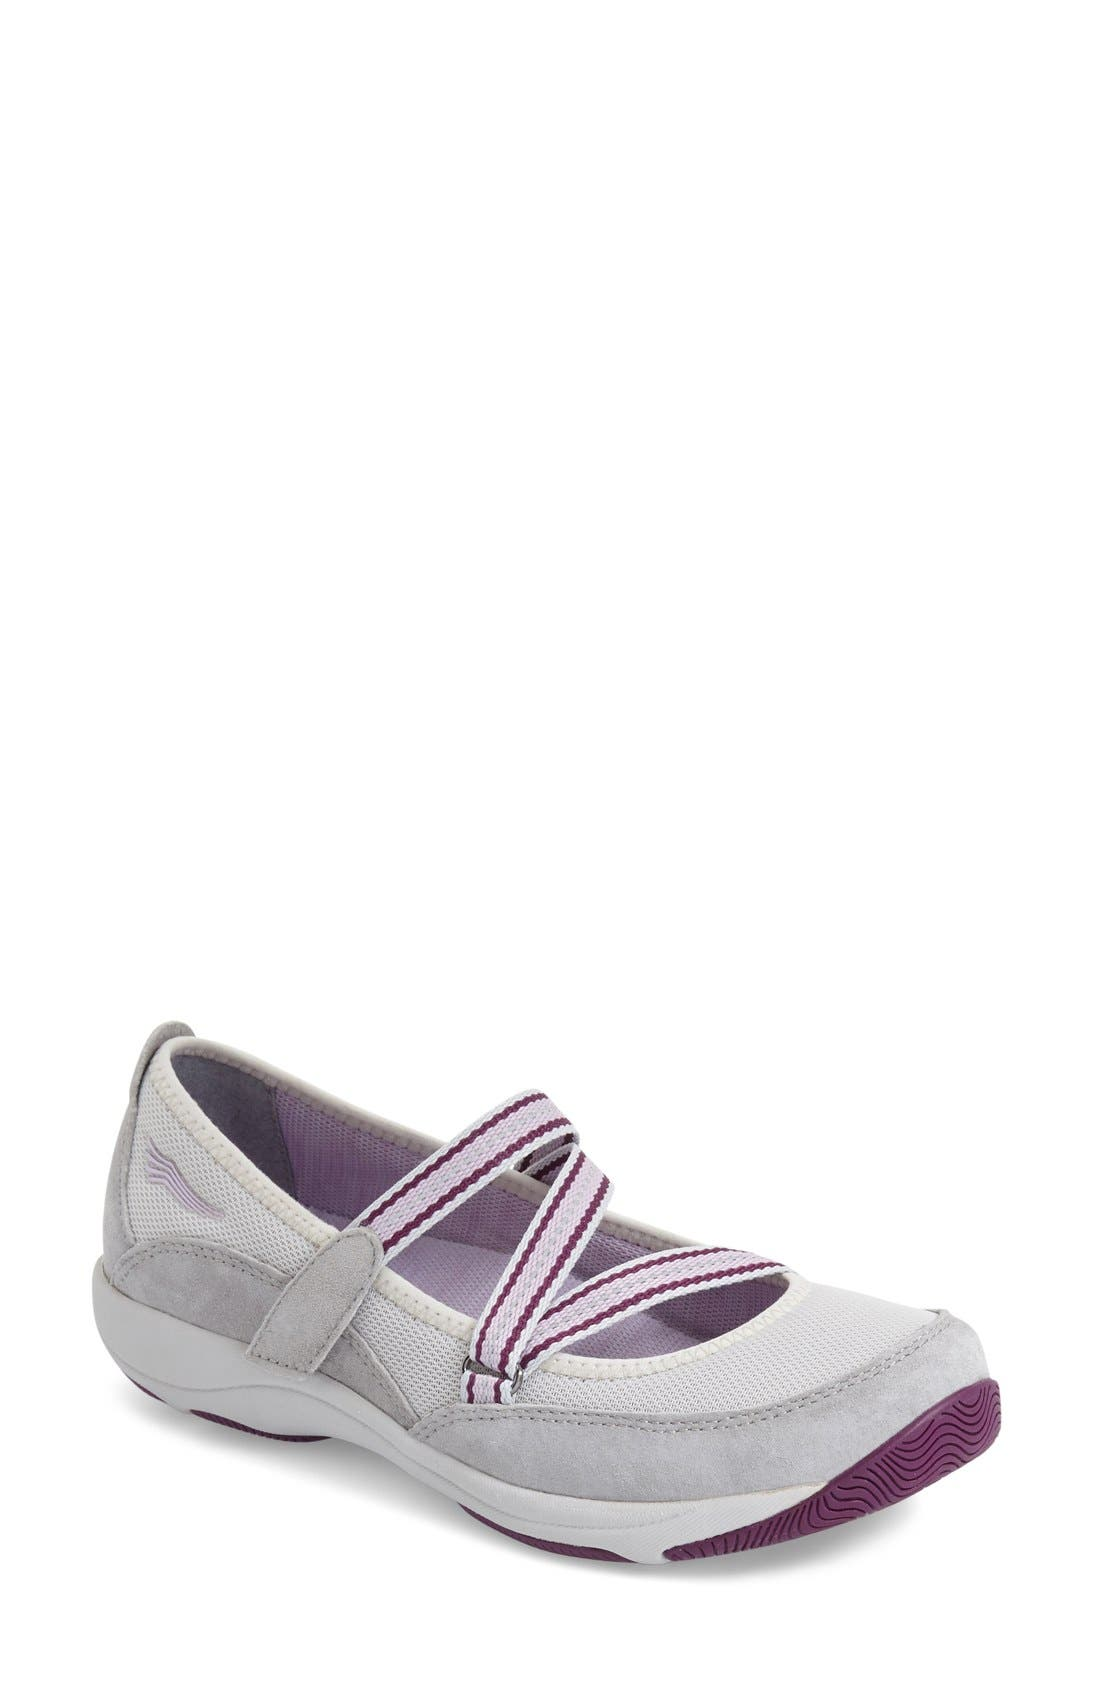 'Hazel' Slip-On Sneaker,                             Main thumbnail 4, color,